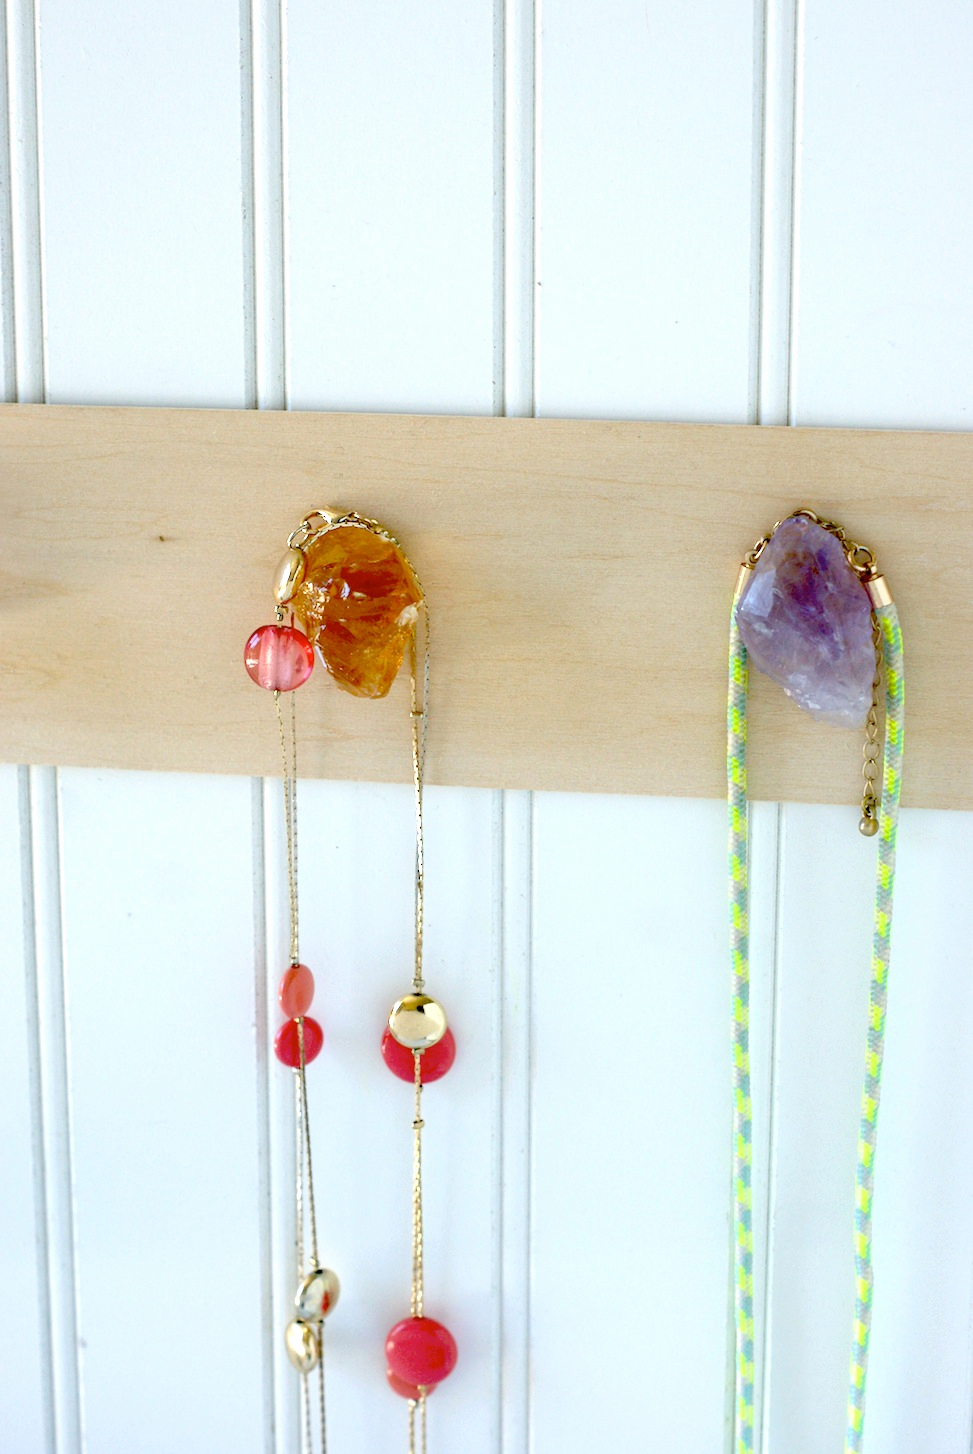 Hang your necklaces on this DIY Mineral Necklace Holder